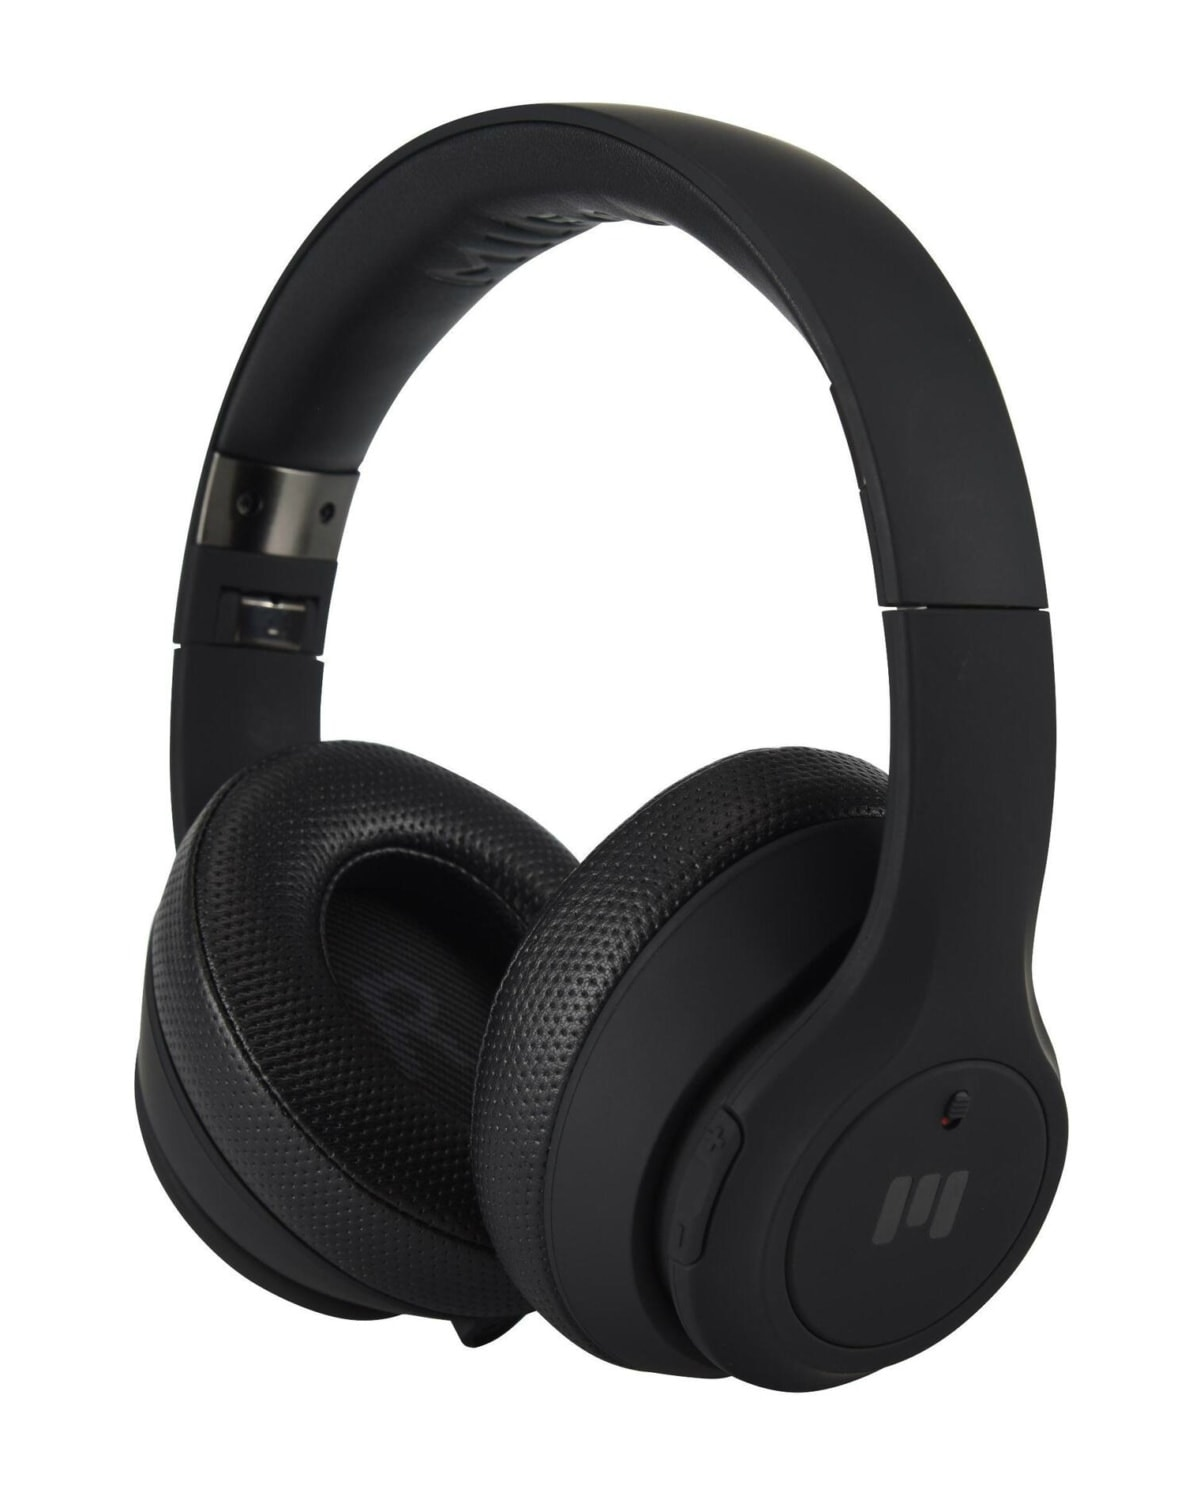 Miiego BOOM Active Noise Cancelling Headset Sort